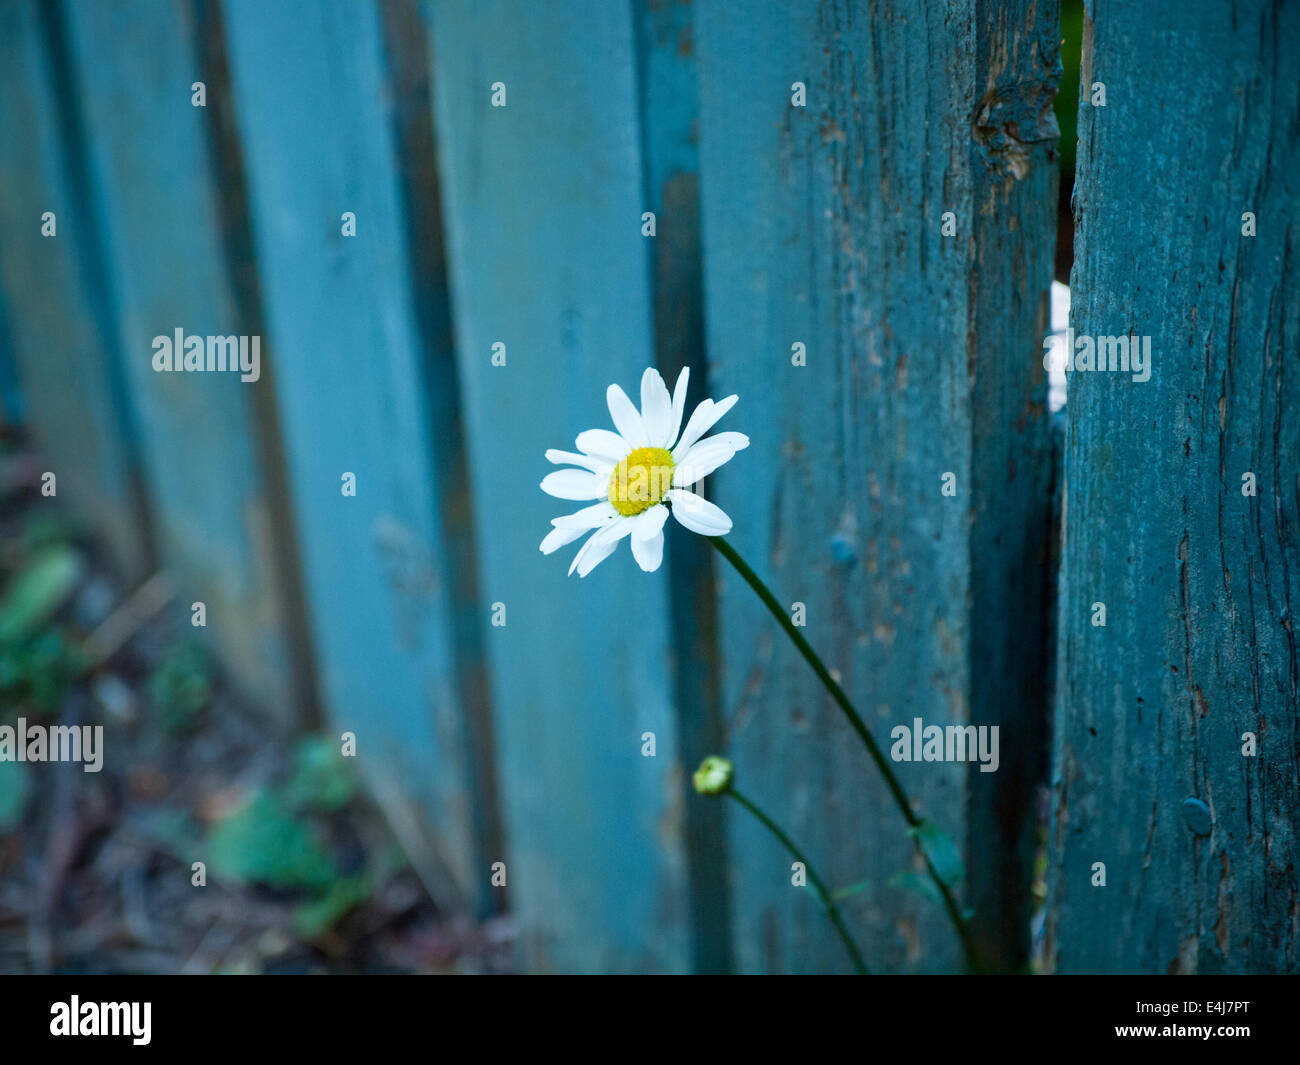 A single, white daisy pokes out through a teal-blue, wooden fence. Victoria, British Columbia, Canada. - Stock Image